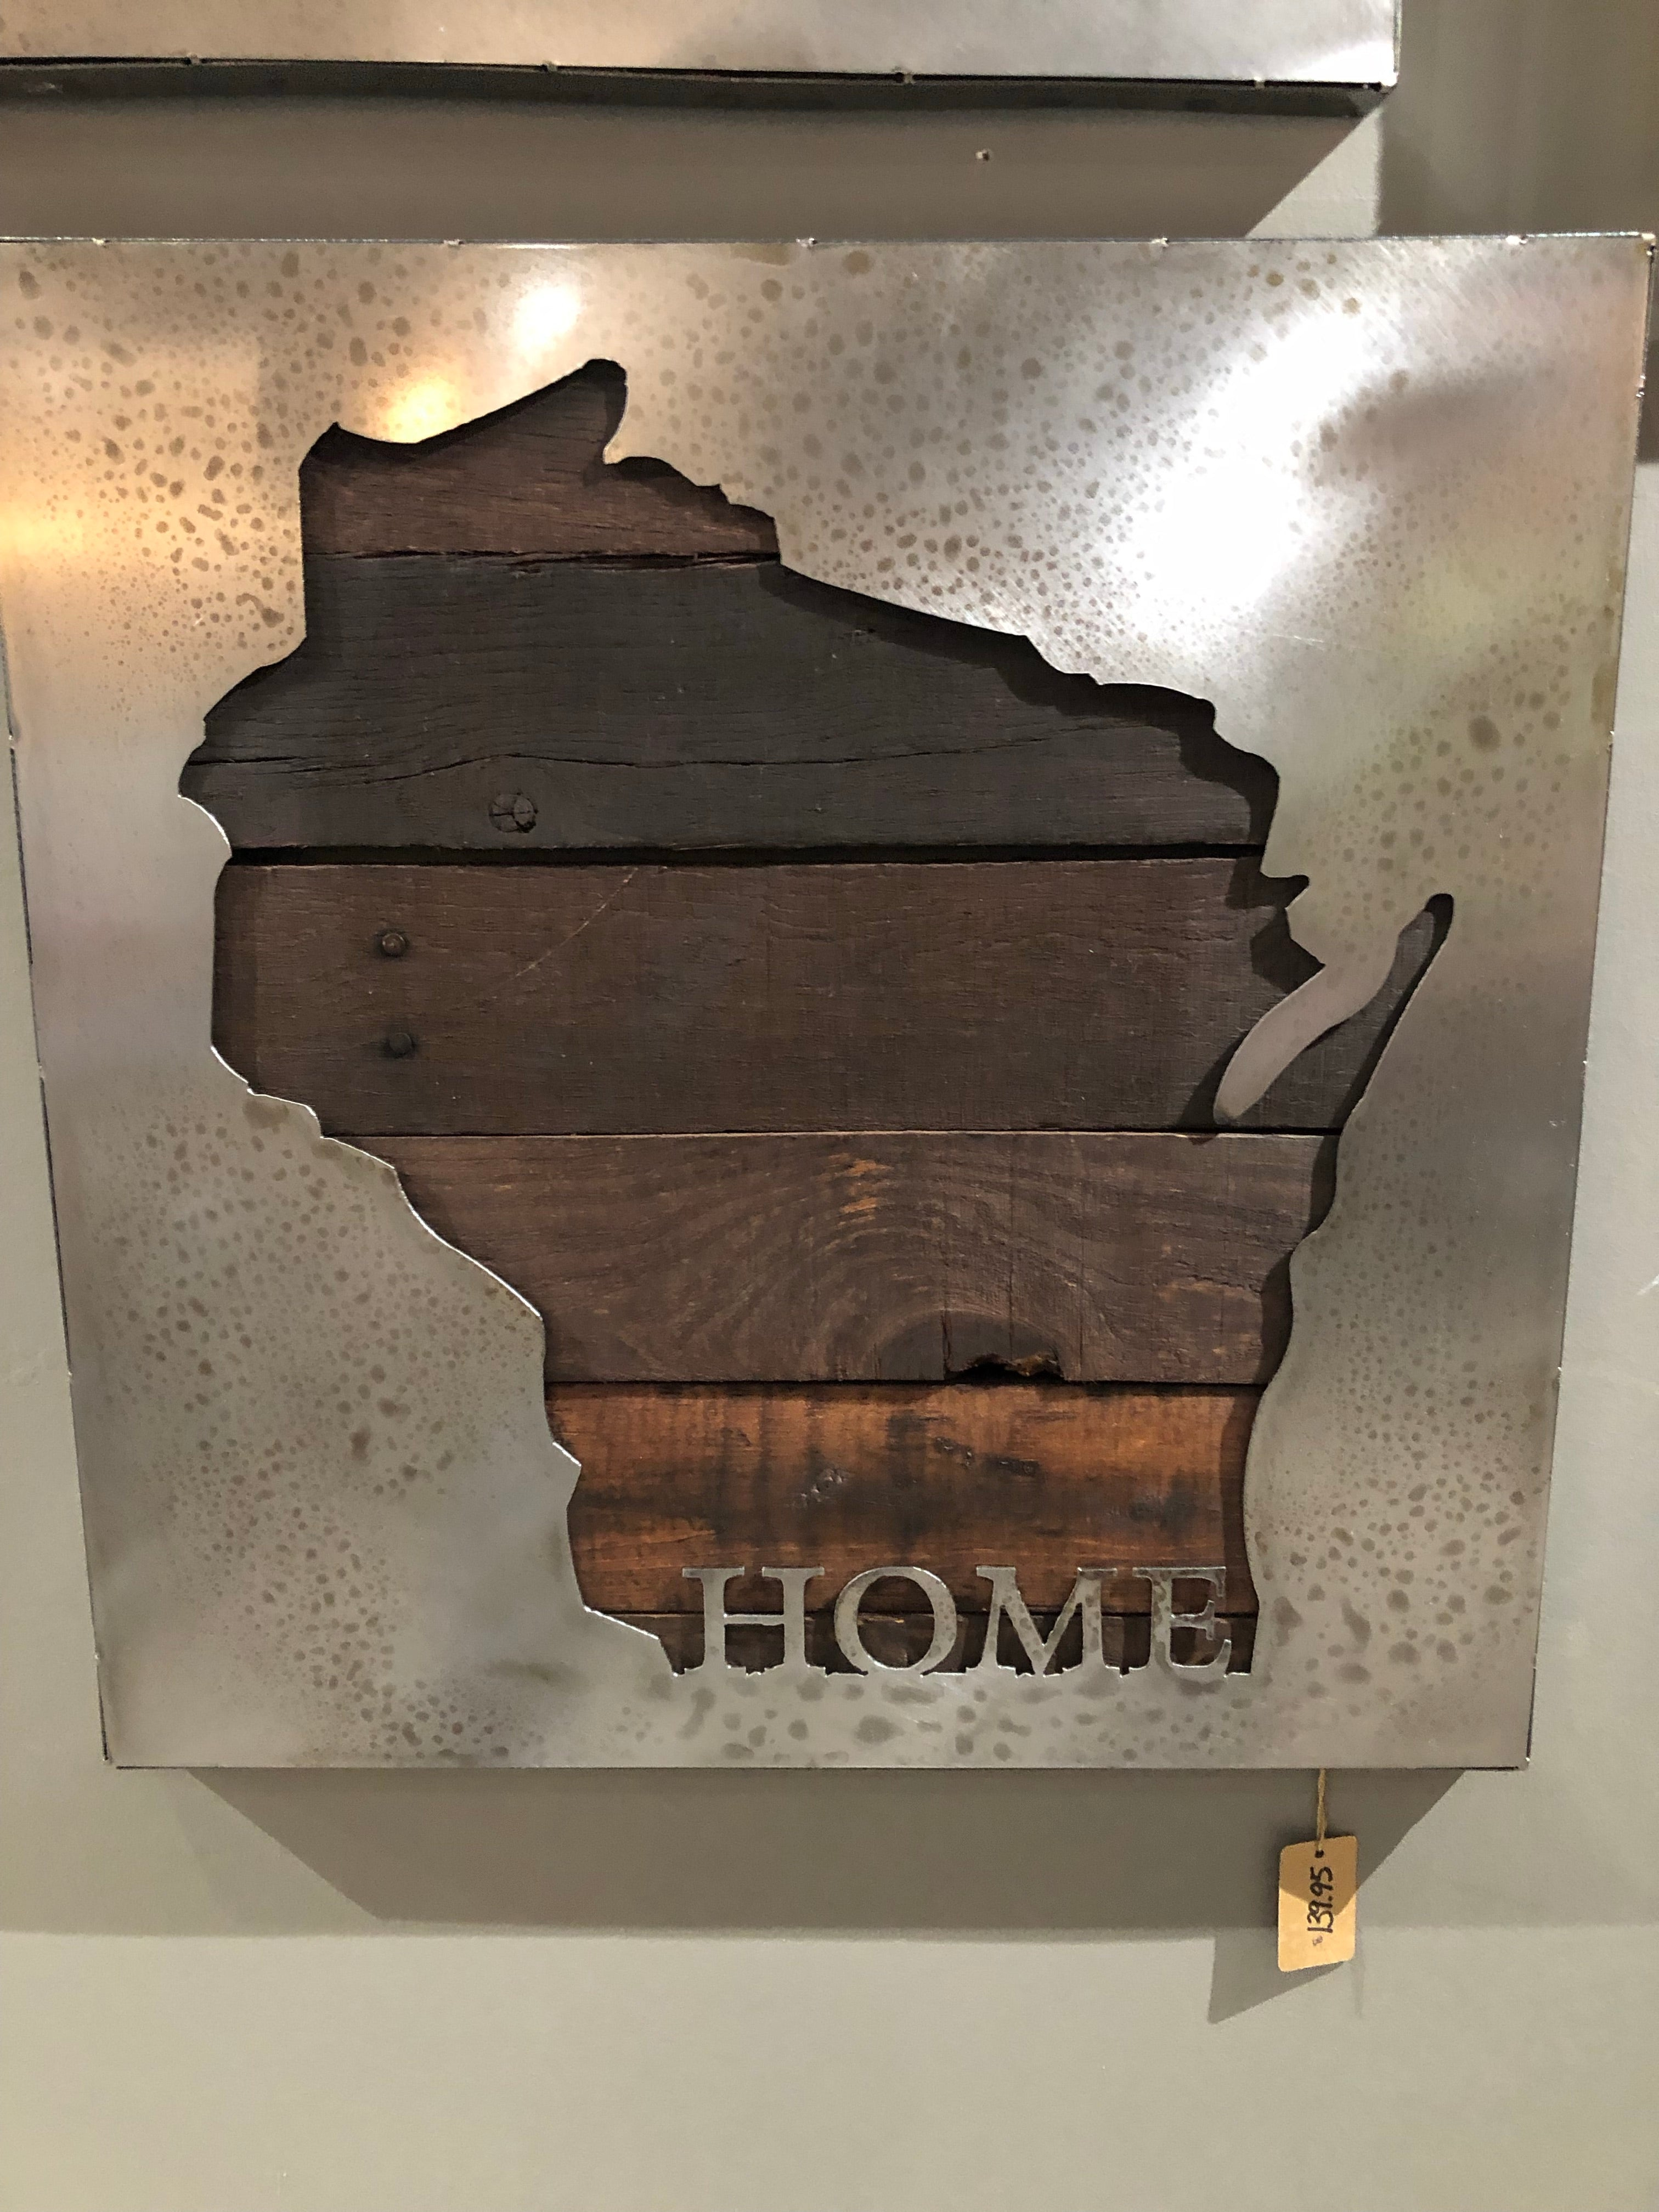 Steel Art-Wisconsin Home(Small)